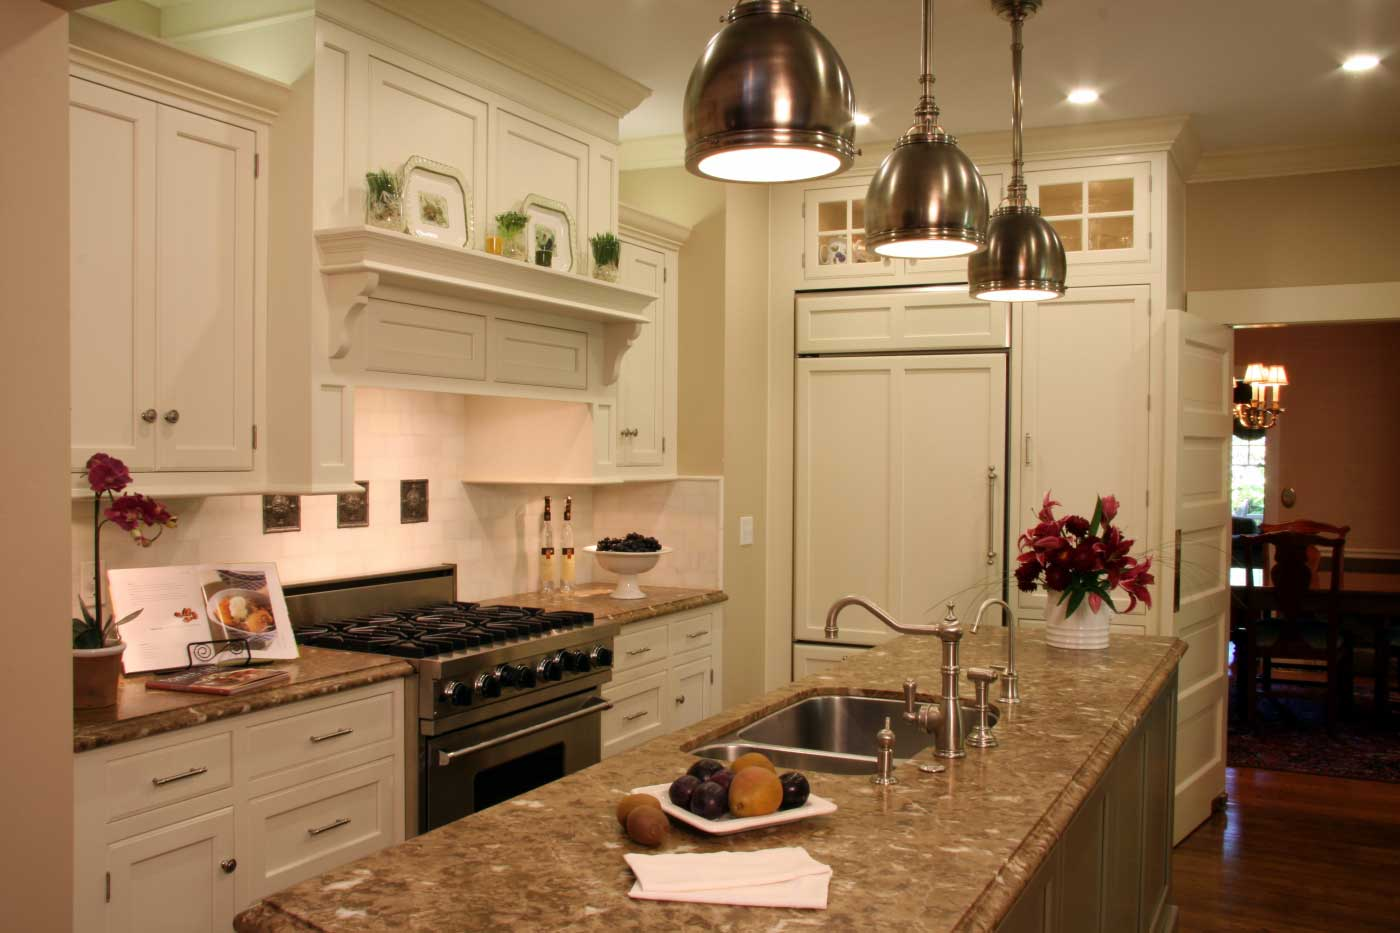 California transitional elegant kitchen design picture